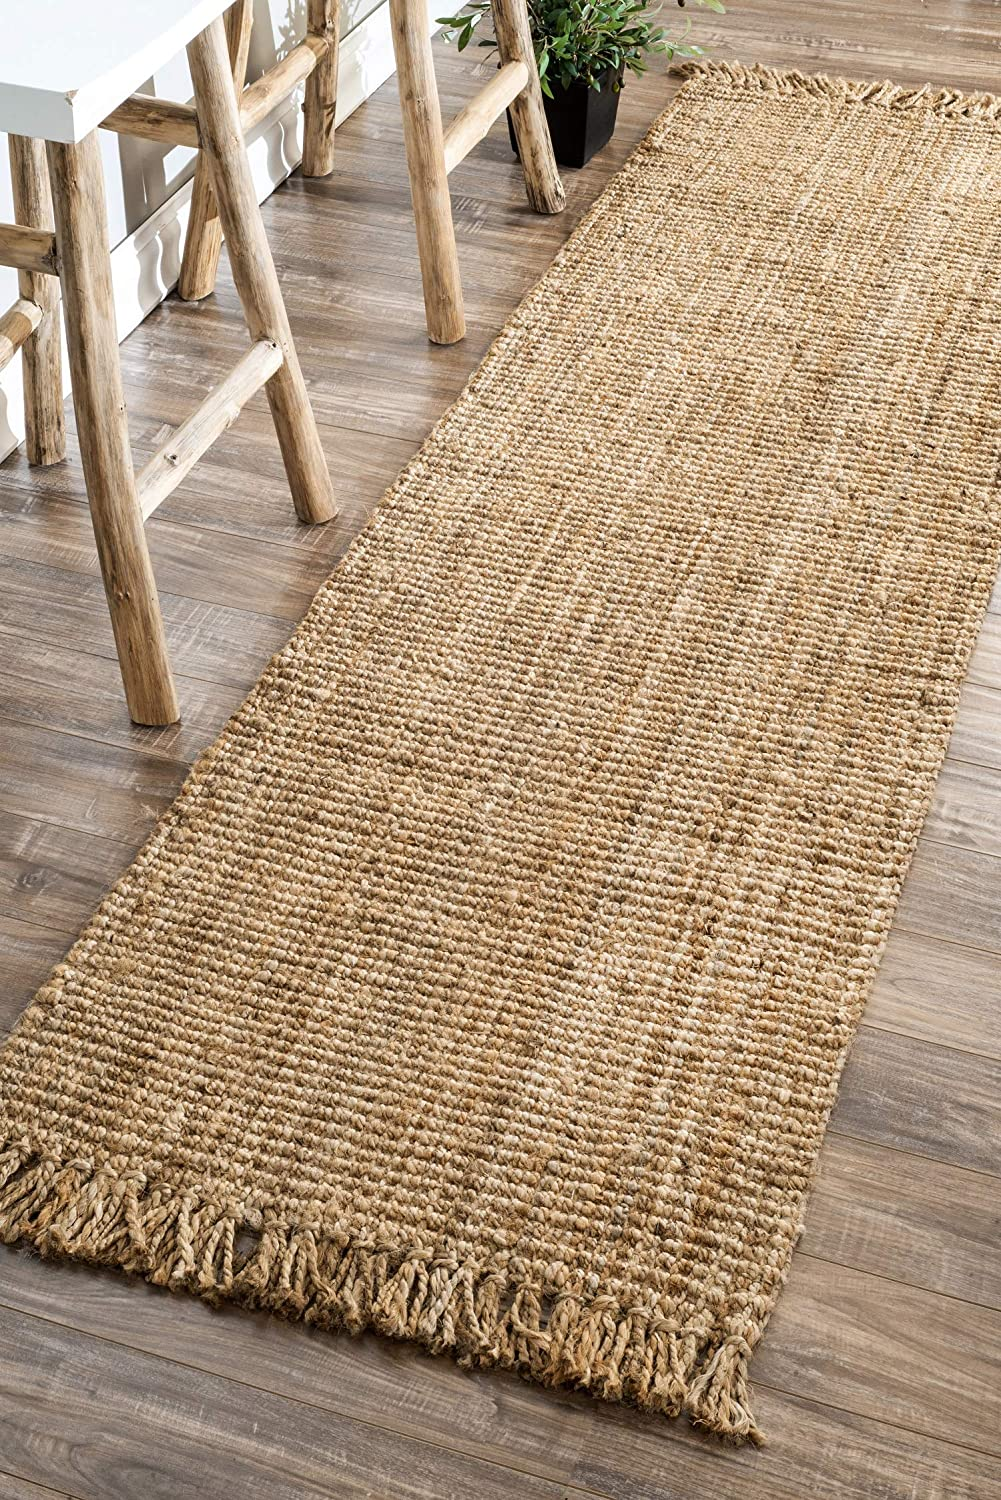 When you need a neutral natural woven rug runner for your kitchen or entry, consider this well-priced one! Come discover more French Farmhouse Decor inspired by Fixer Upper and click here to Get the Look of The Club House Kitchen & Sun Room. #fixerupper #joannagaines #kitchendecor #frenchfarmhouse